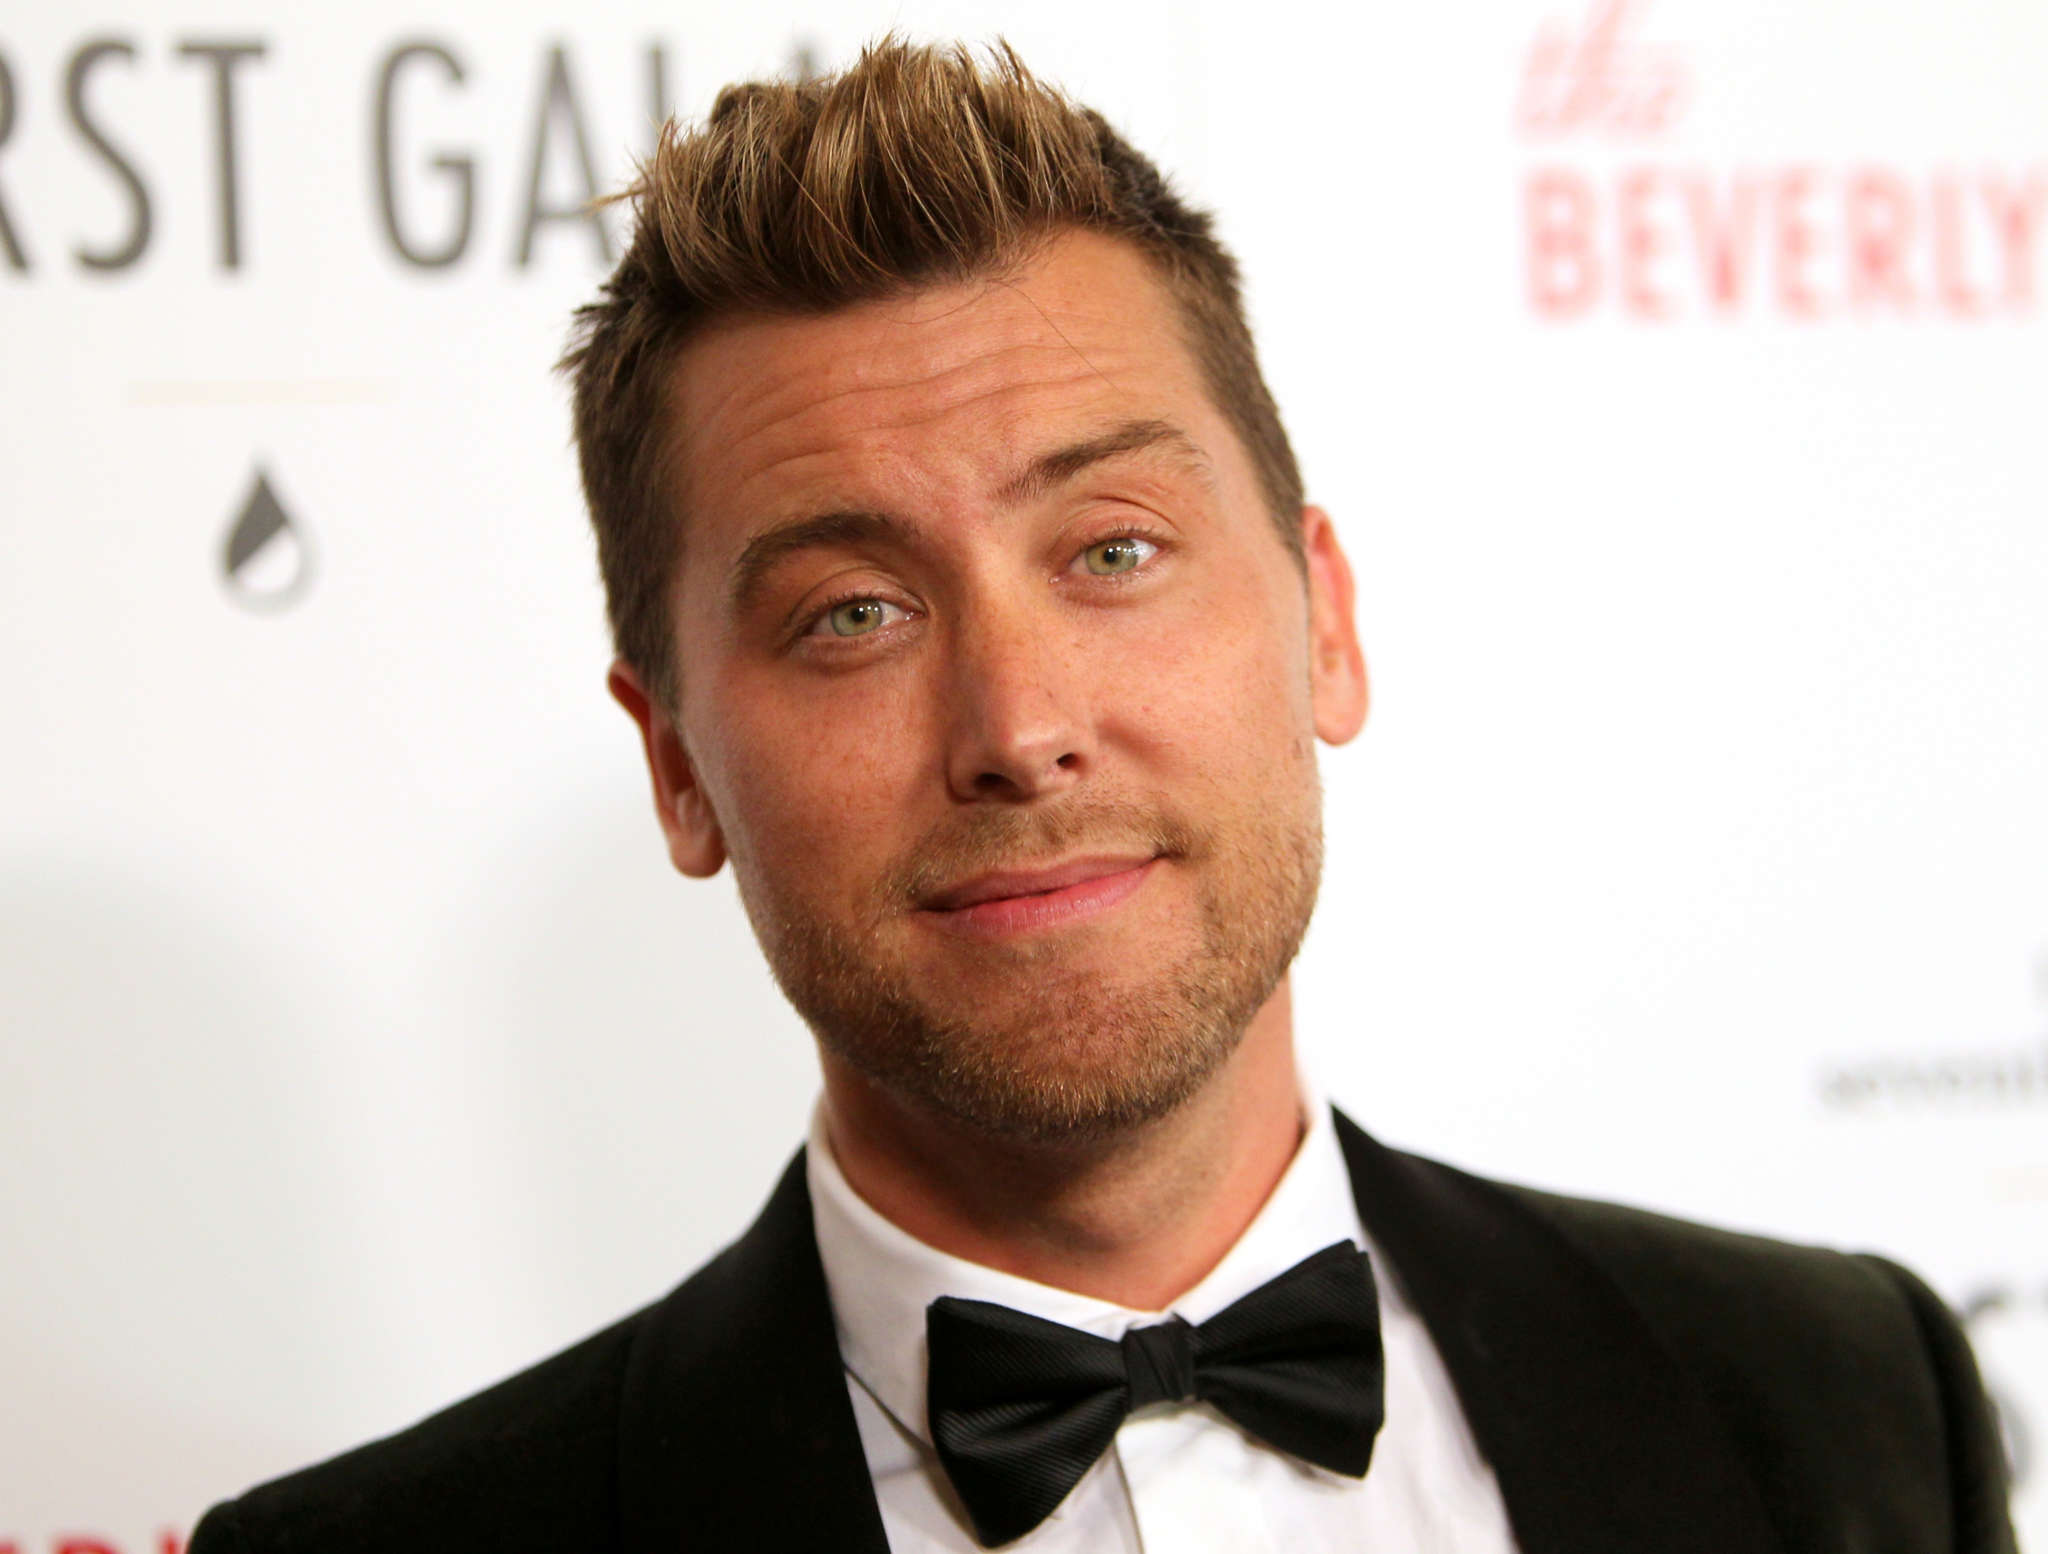 """lance-bass-opens-up-about-his-surrogacy-journey-after-miscarriage-a-few-months-ago-says-hes-still-hopeful-despite-many-struggles-and-failed-attempts"""